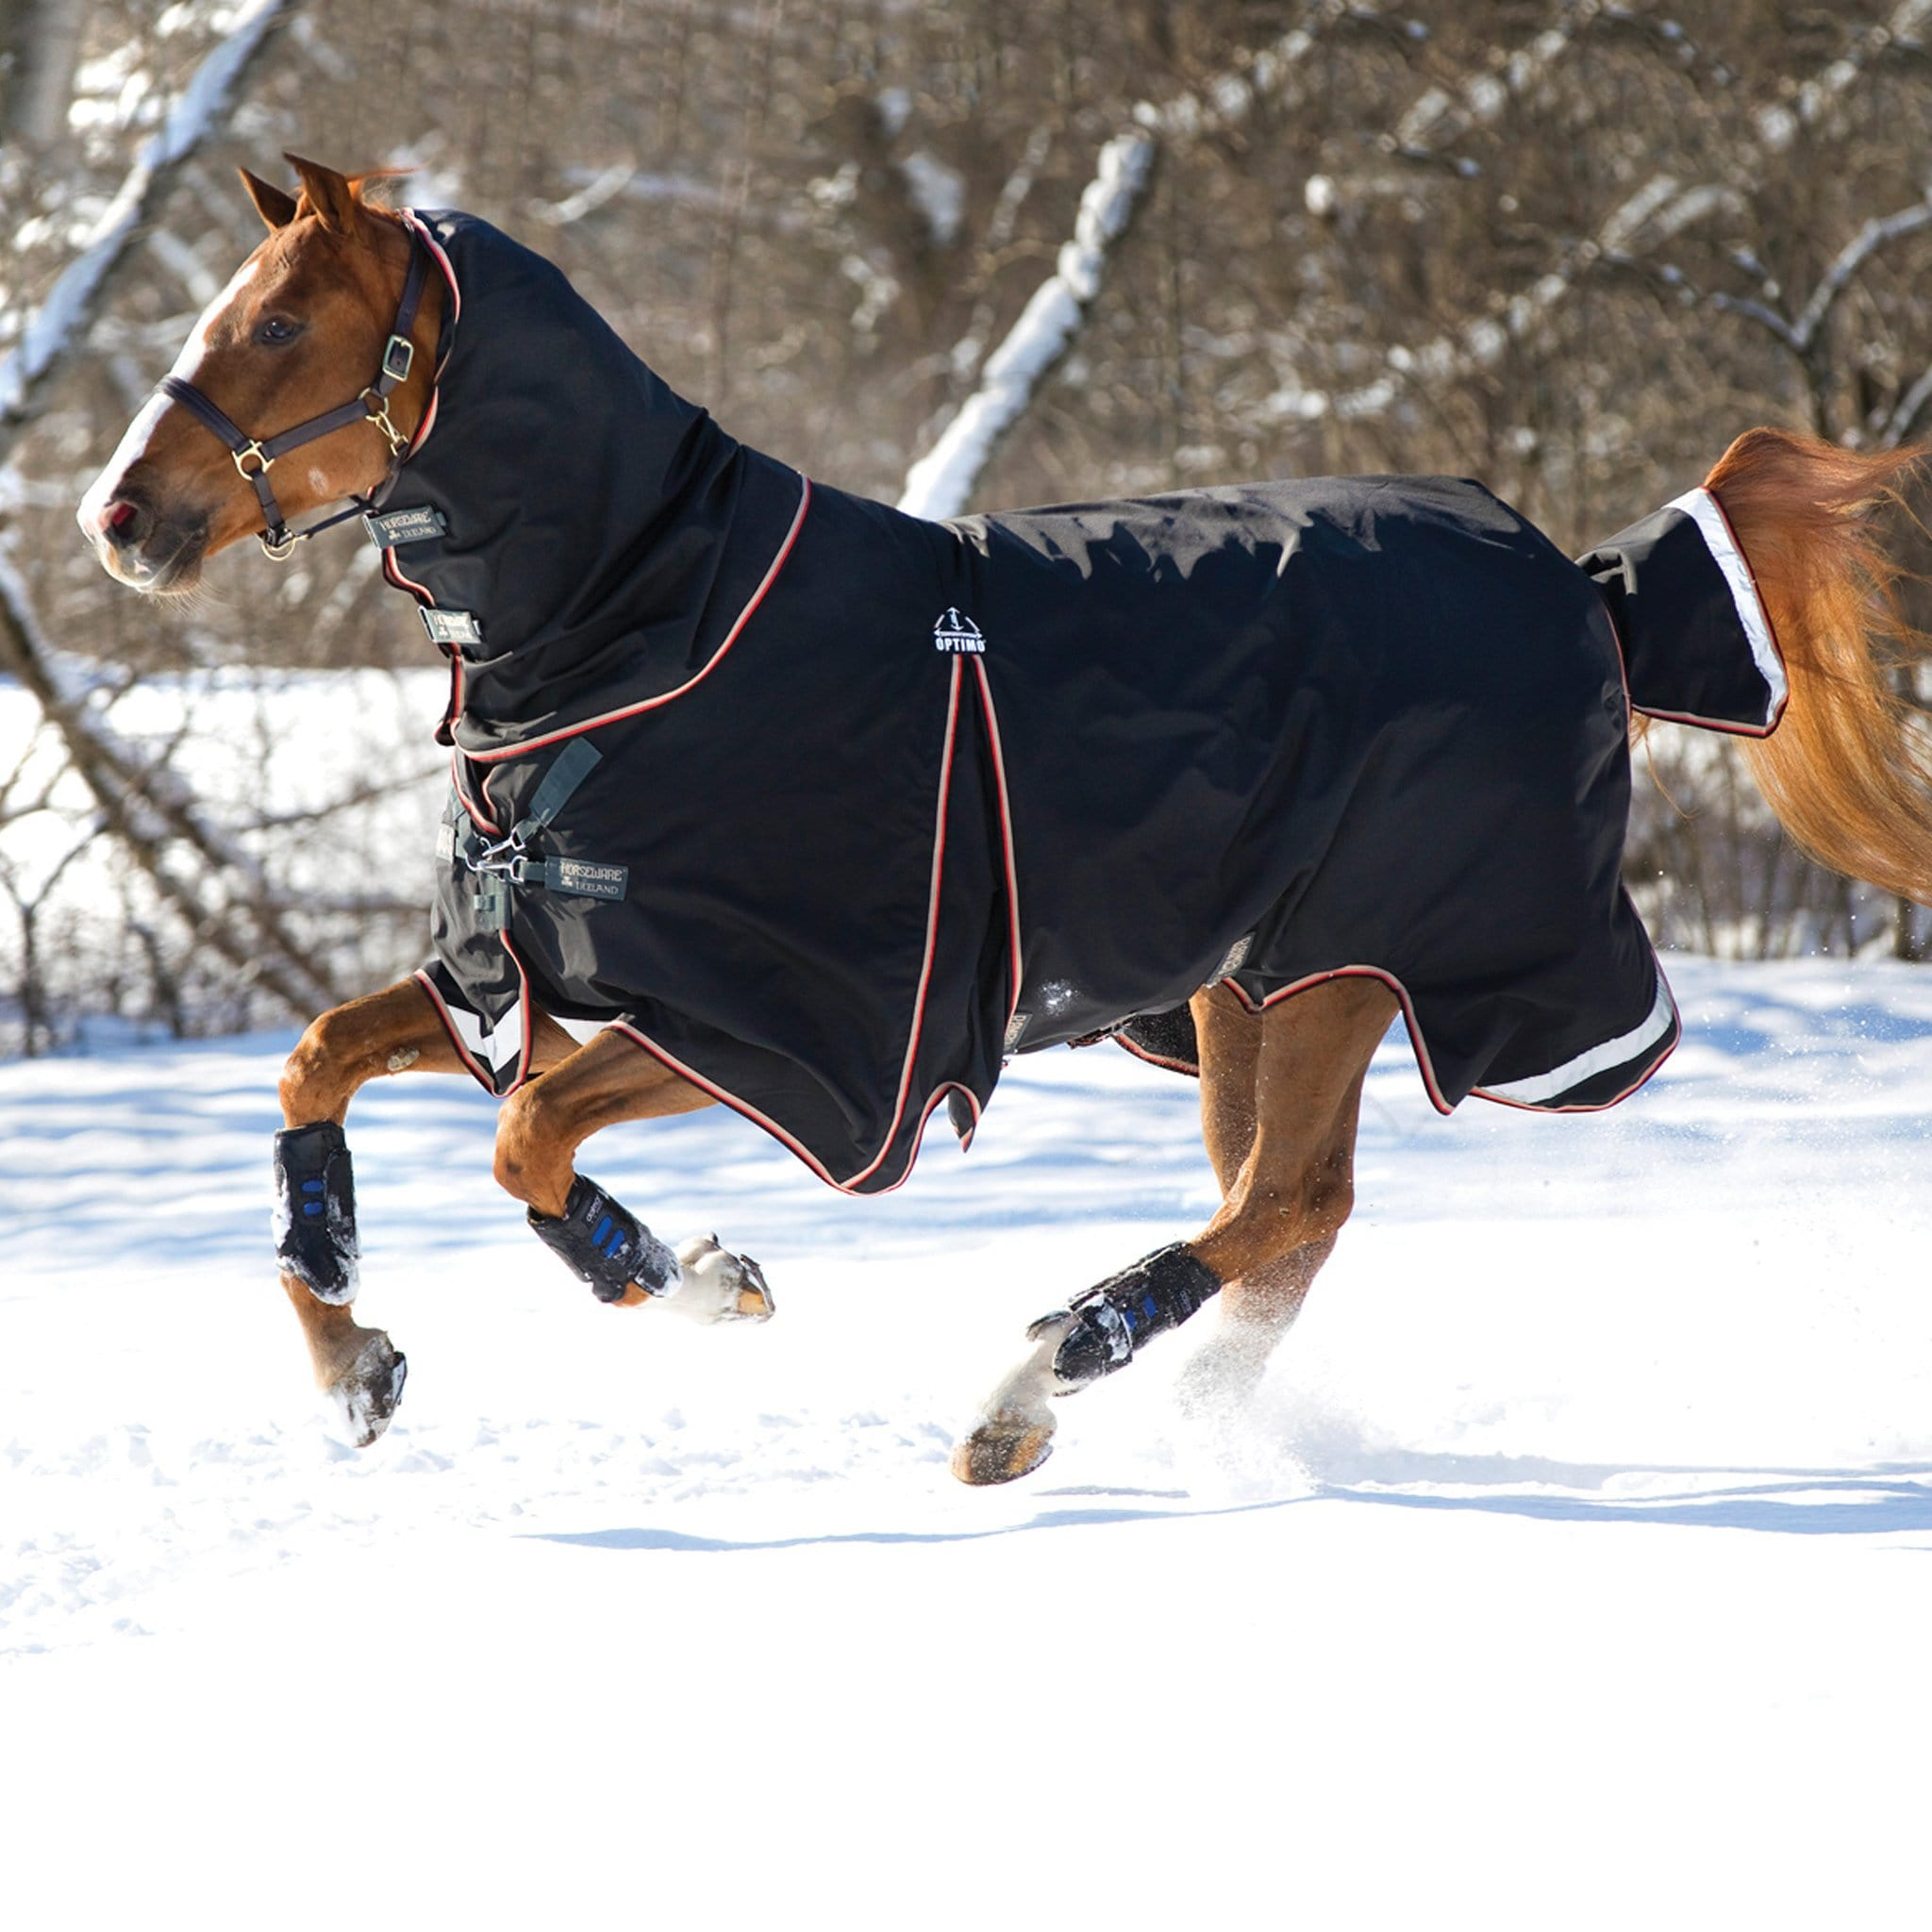 Rambo Optimo Heavyweight 400g Turnout Rug And Detachable Neck Cover Galloping Horse in the Snow LHS AAAF11